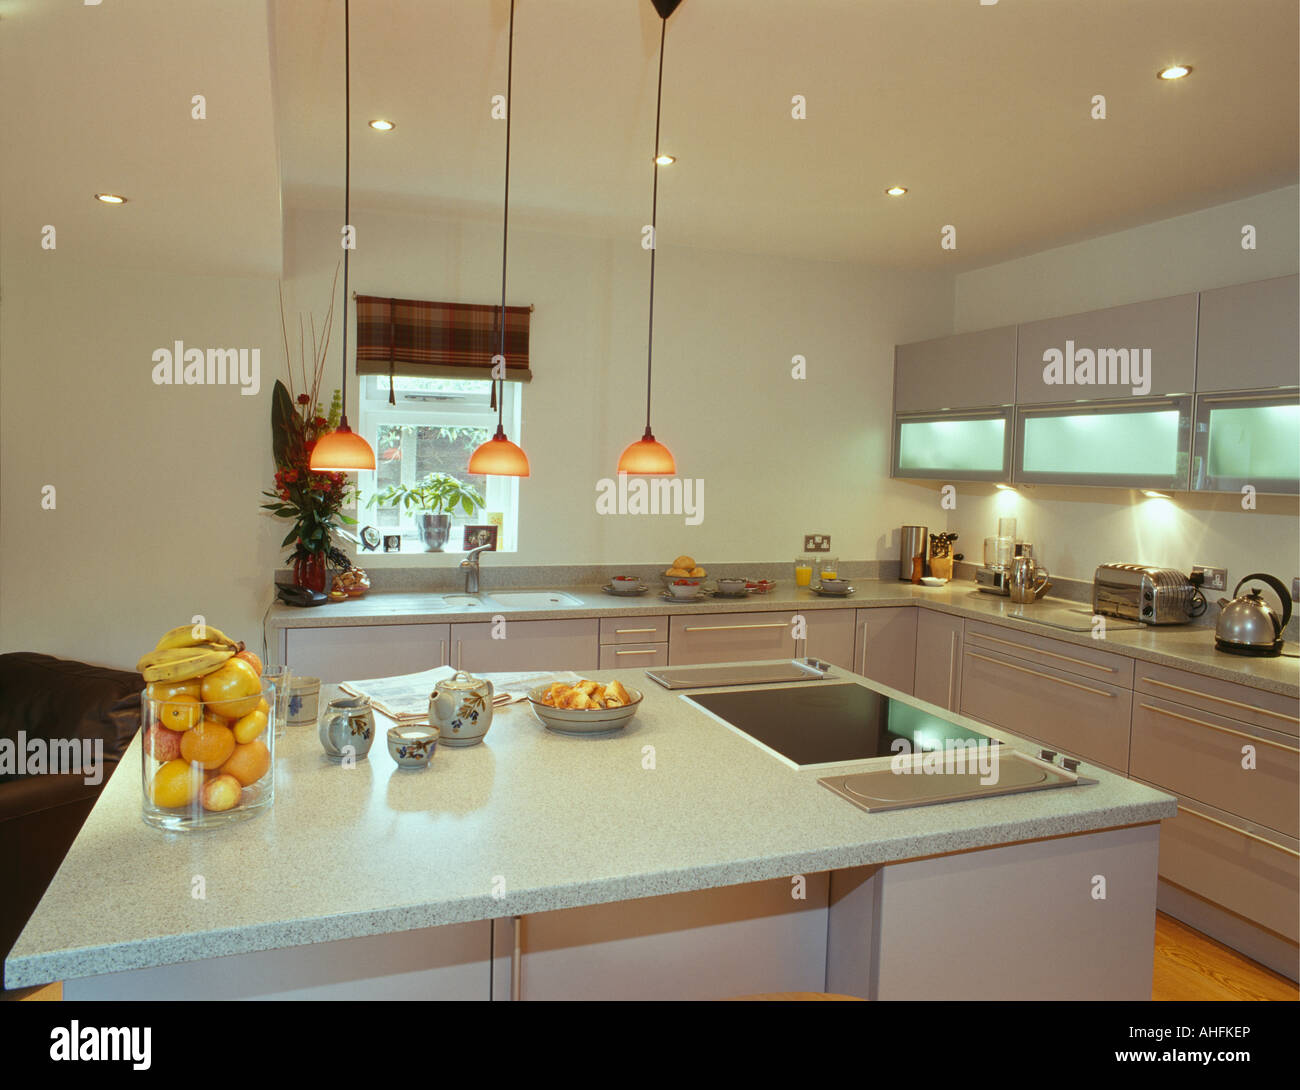 Kitchen island lighting halogen - Pendant Lights Over Island Unit With Halogen Hob And Oranges In Glass Jar In Modern White Kitchen